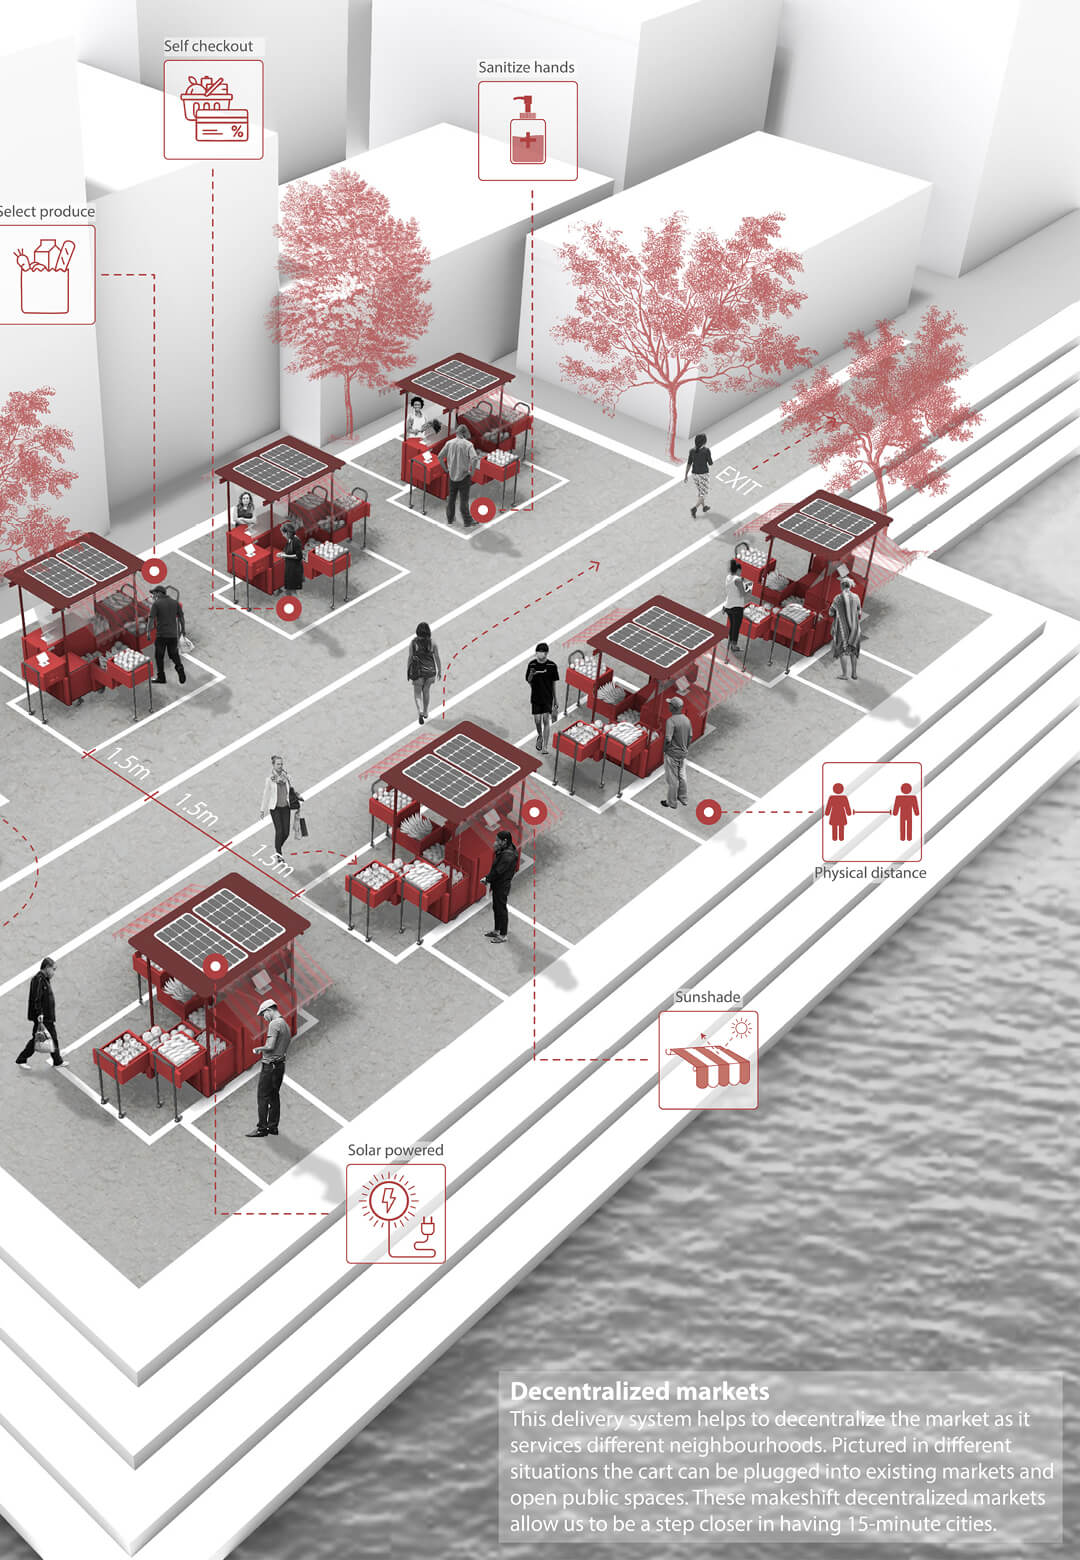 Design concepts behind the decentralised markets | Market on Wheels by MuseLAB | STIRworld